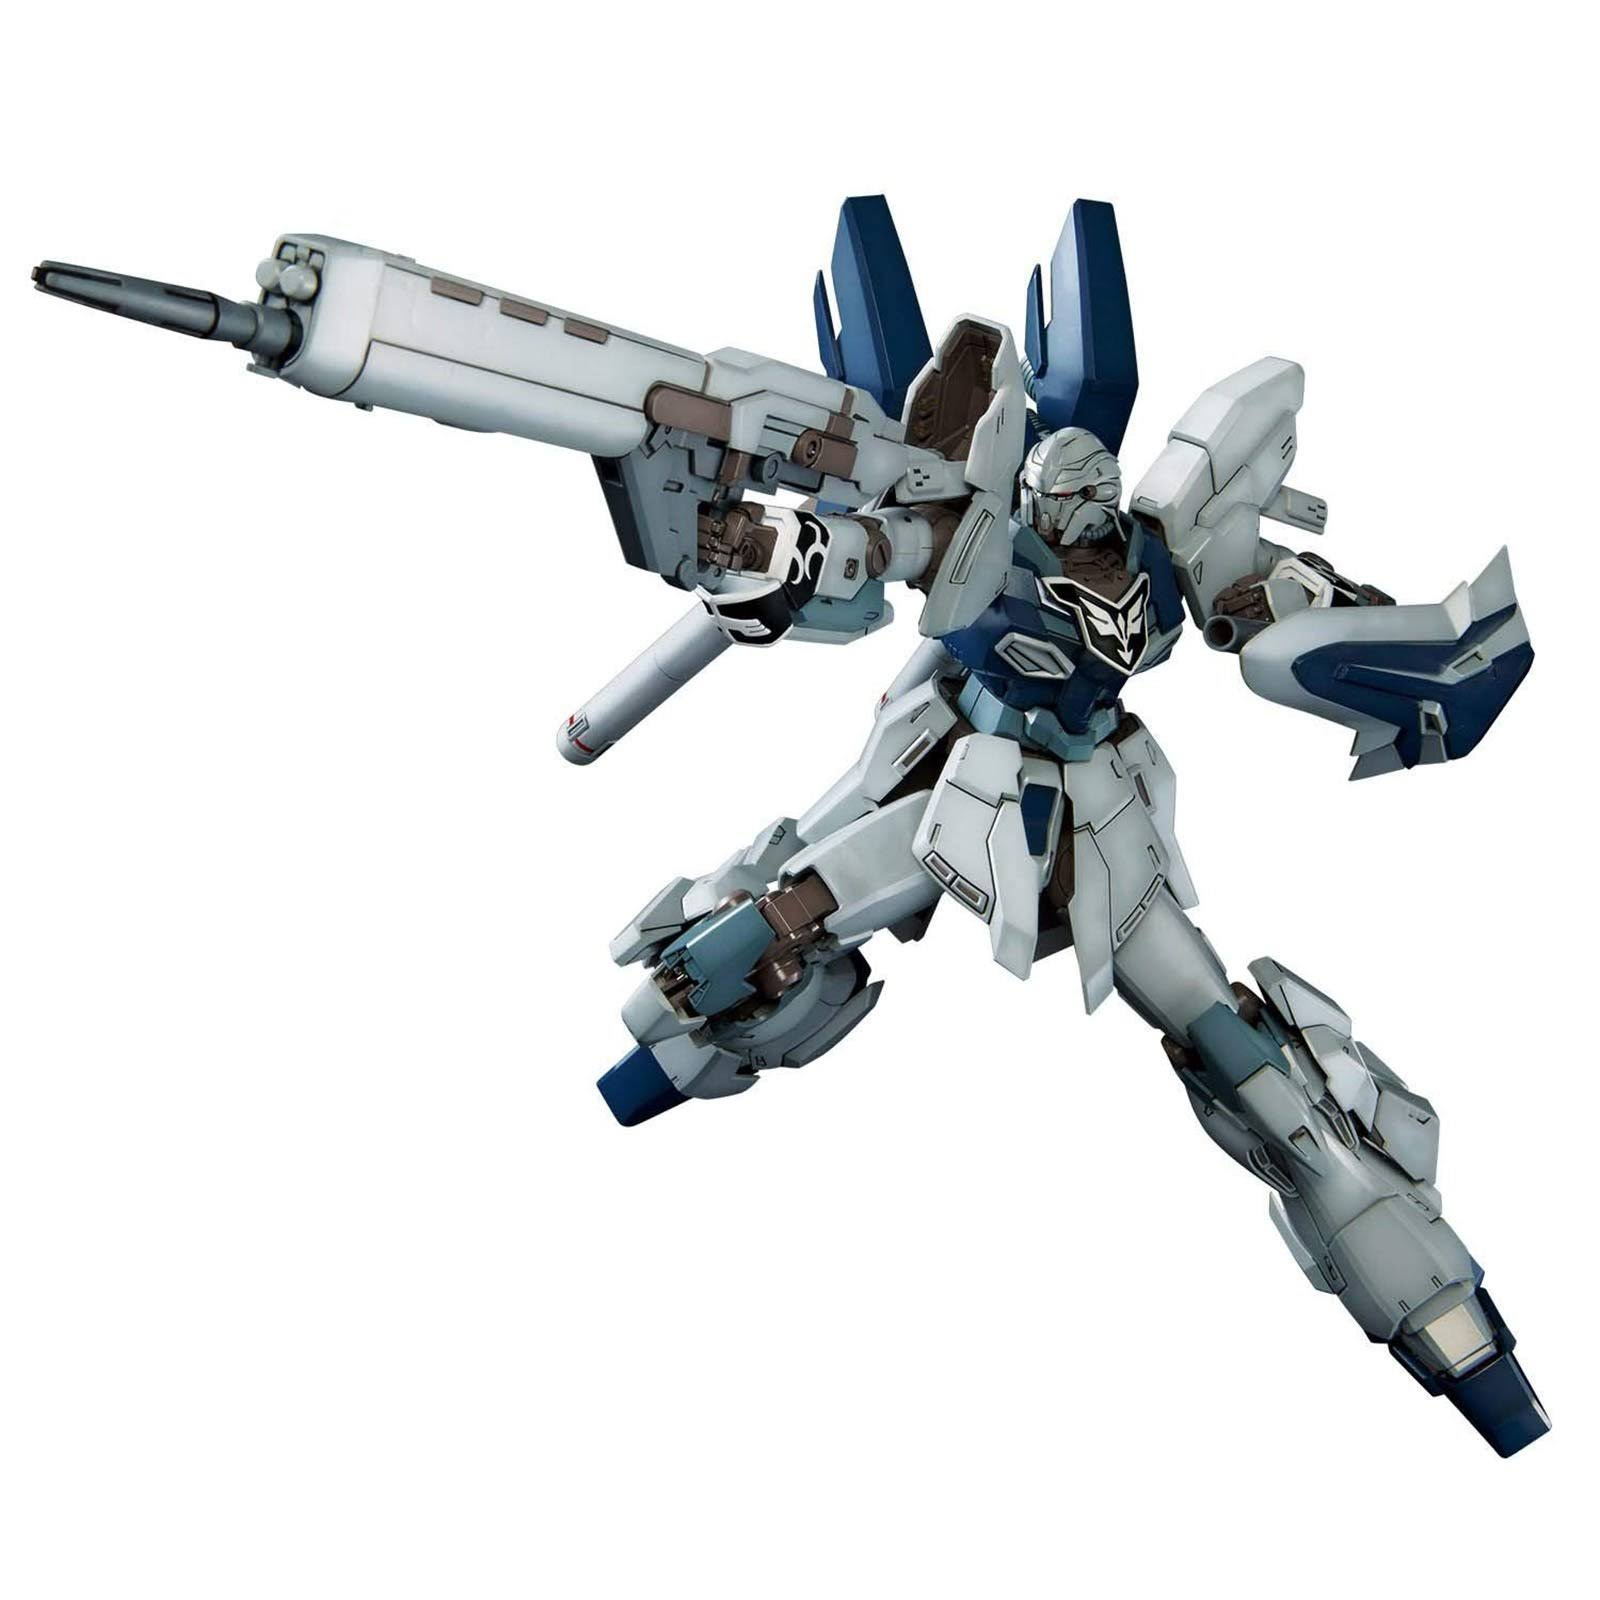 Bandai Sinanju Stein Narrative Ver Gundam Model Kit - 1/100 Scale